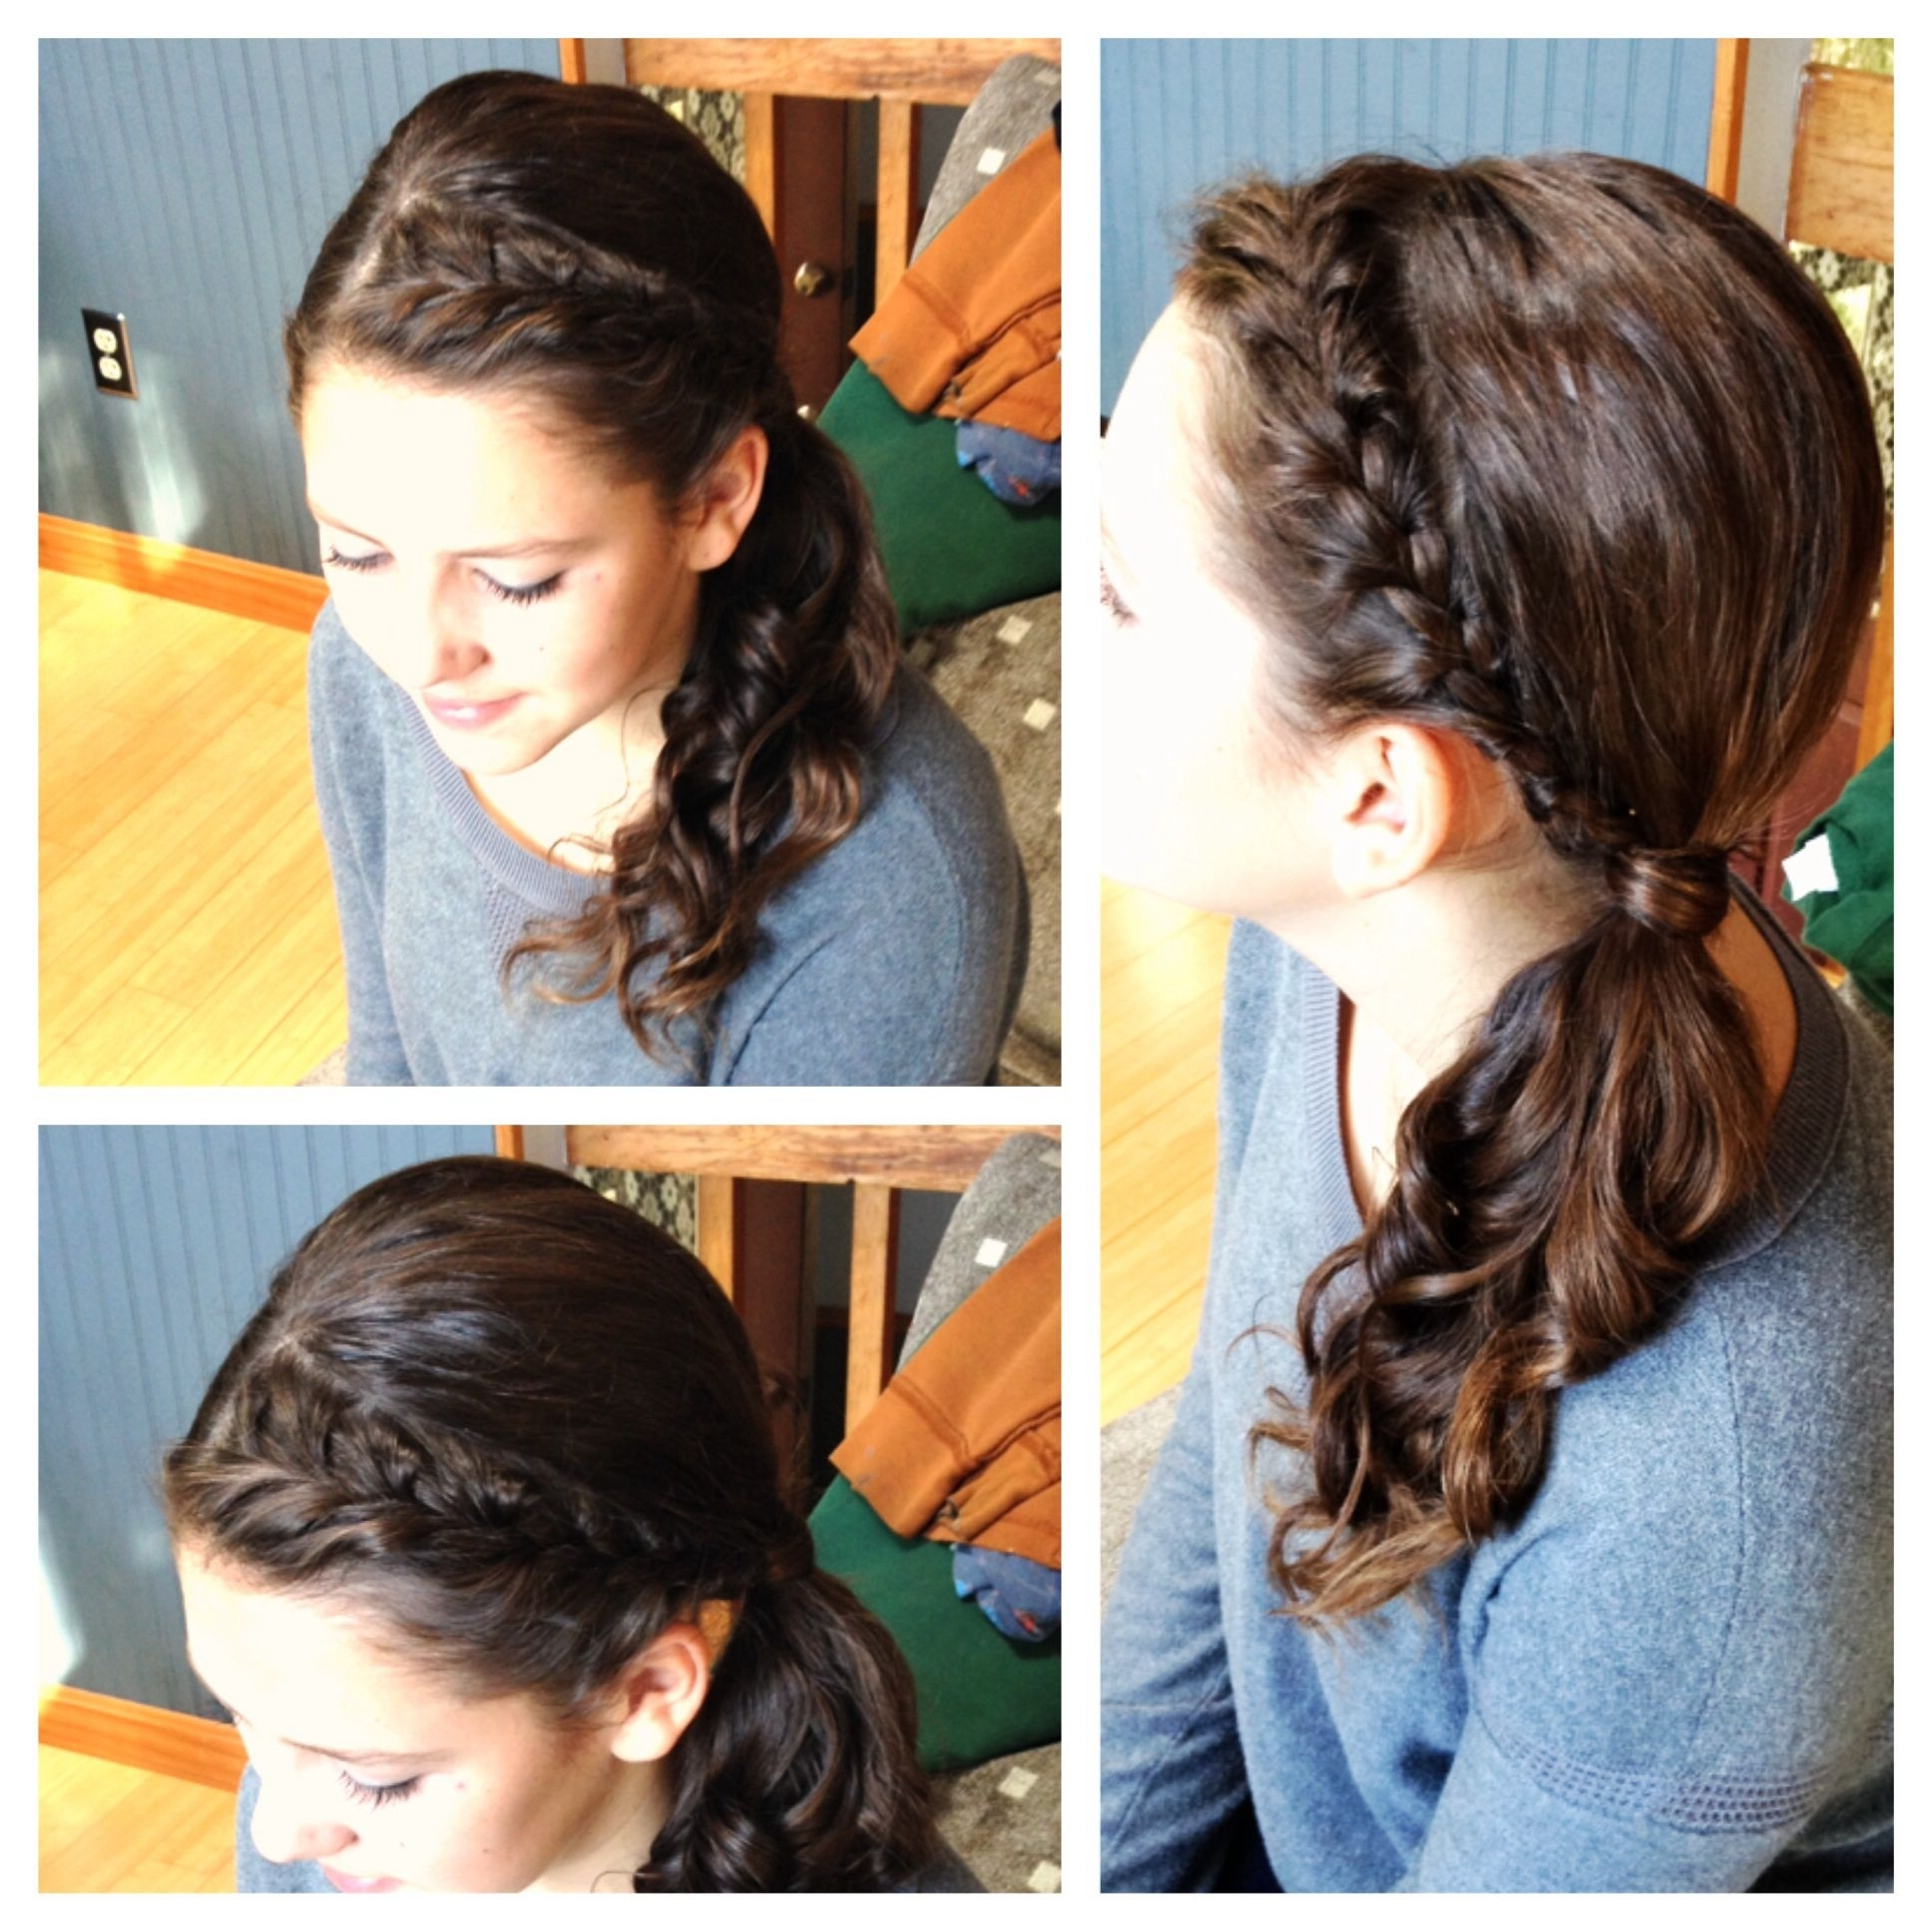 Headband French Braid Into A Side Ponytail With Curls (View 12 of 20)